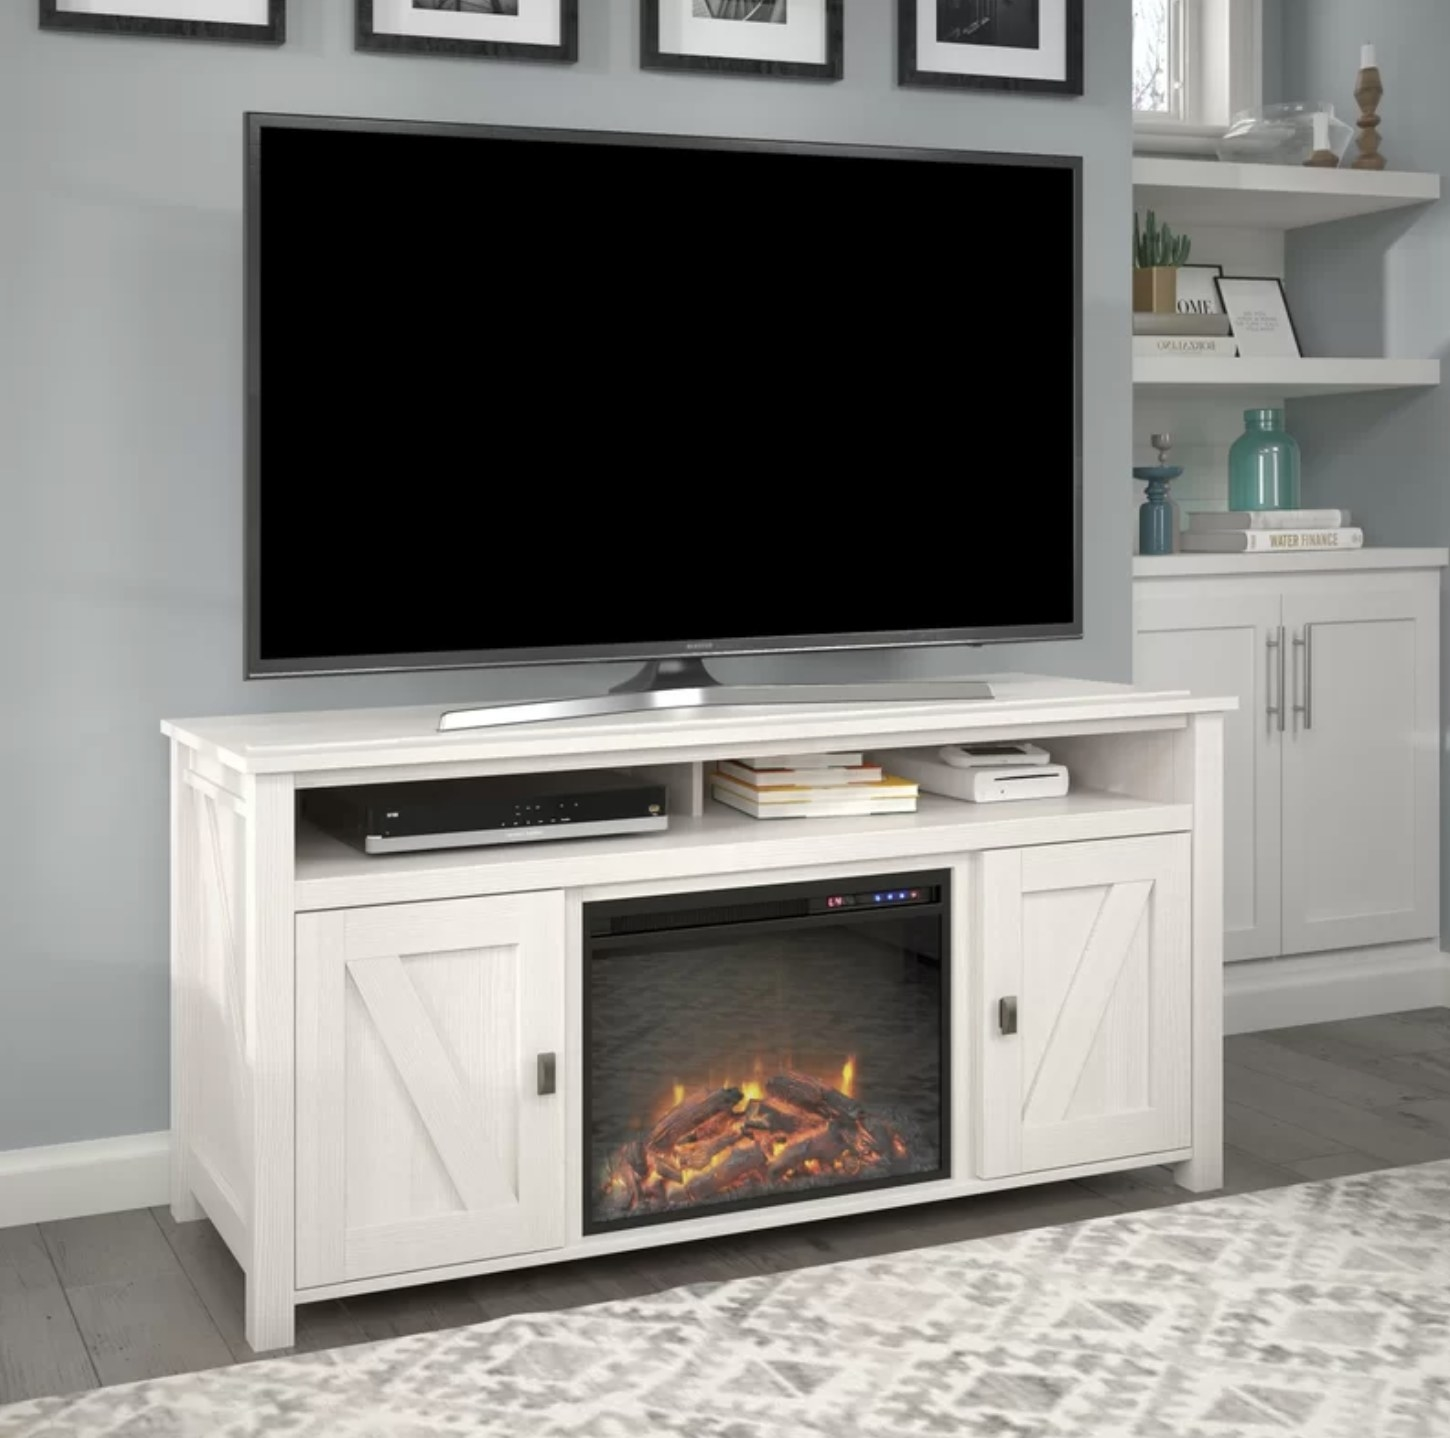 The TV Stand